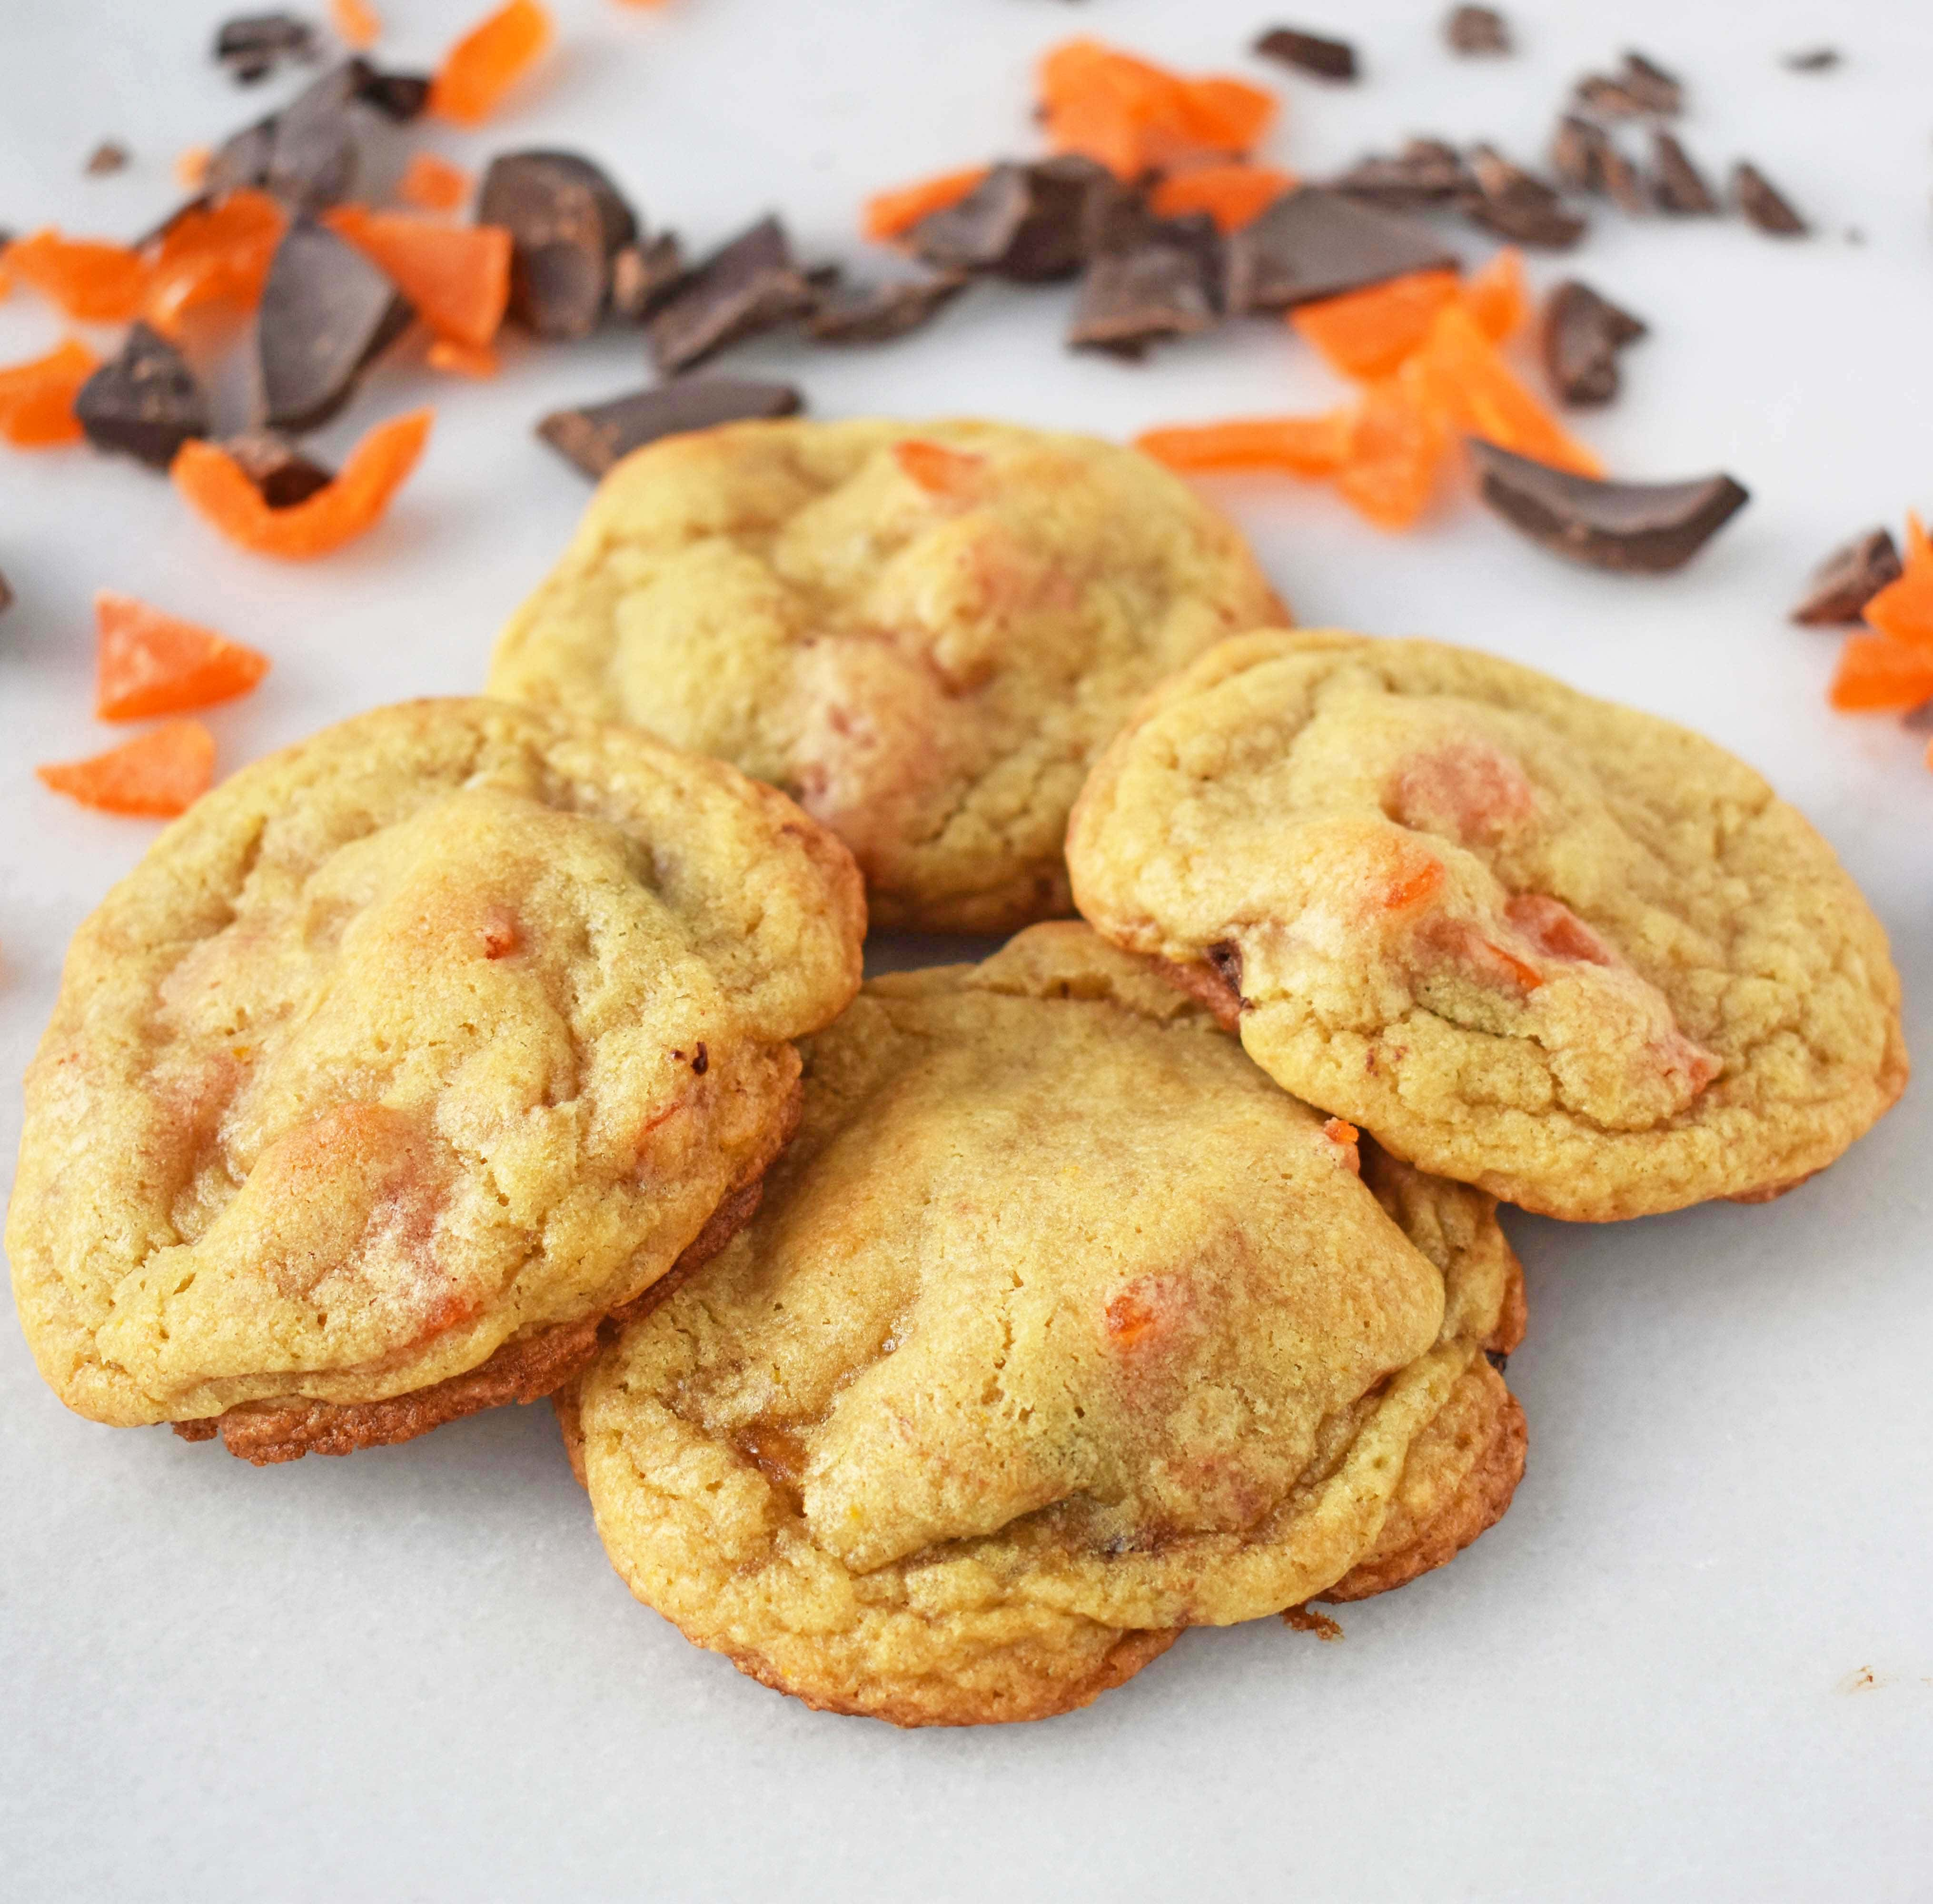 RubySnap Vivianna Dark Chocolate Mango Cookies by Modern Honey. Citrus dough cookies studded with dark chocolate and mango. A highly addicting cookie from this popular bakery. www.modernhoney.com